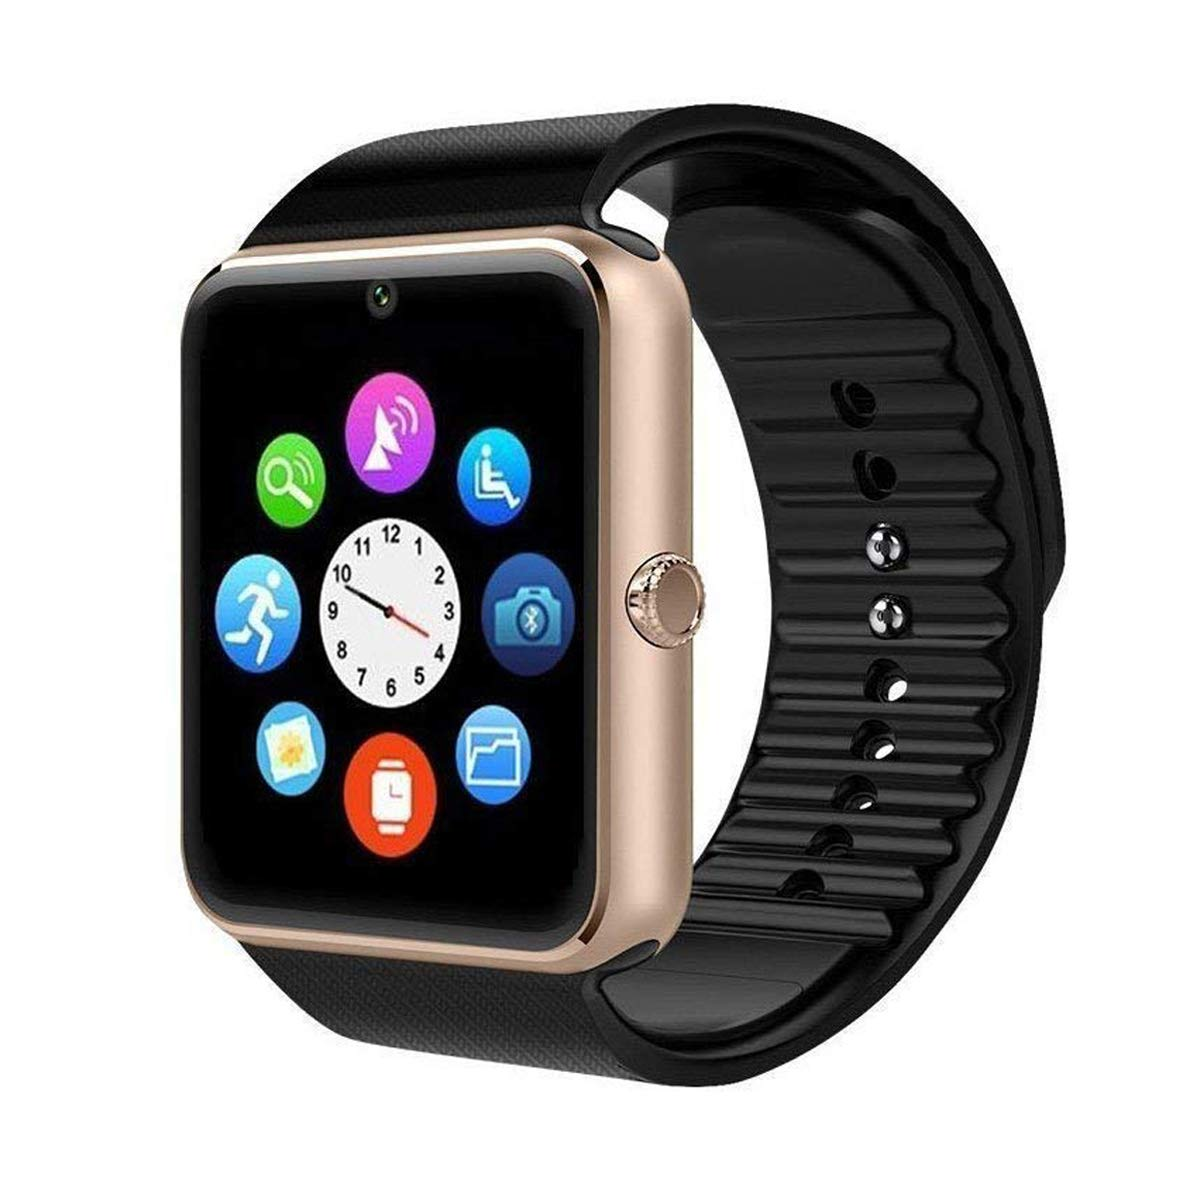 Mgaolo GT08 Smart Watch Smartwatch Bluetooth Sweatproof Touchscreen Phone with Camera TF/SIM Card Slot for Android and iPhone Smartphones for Kids ...